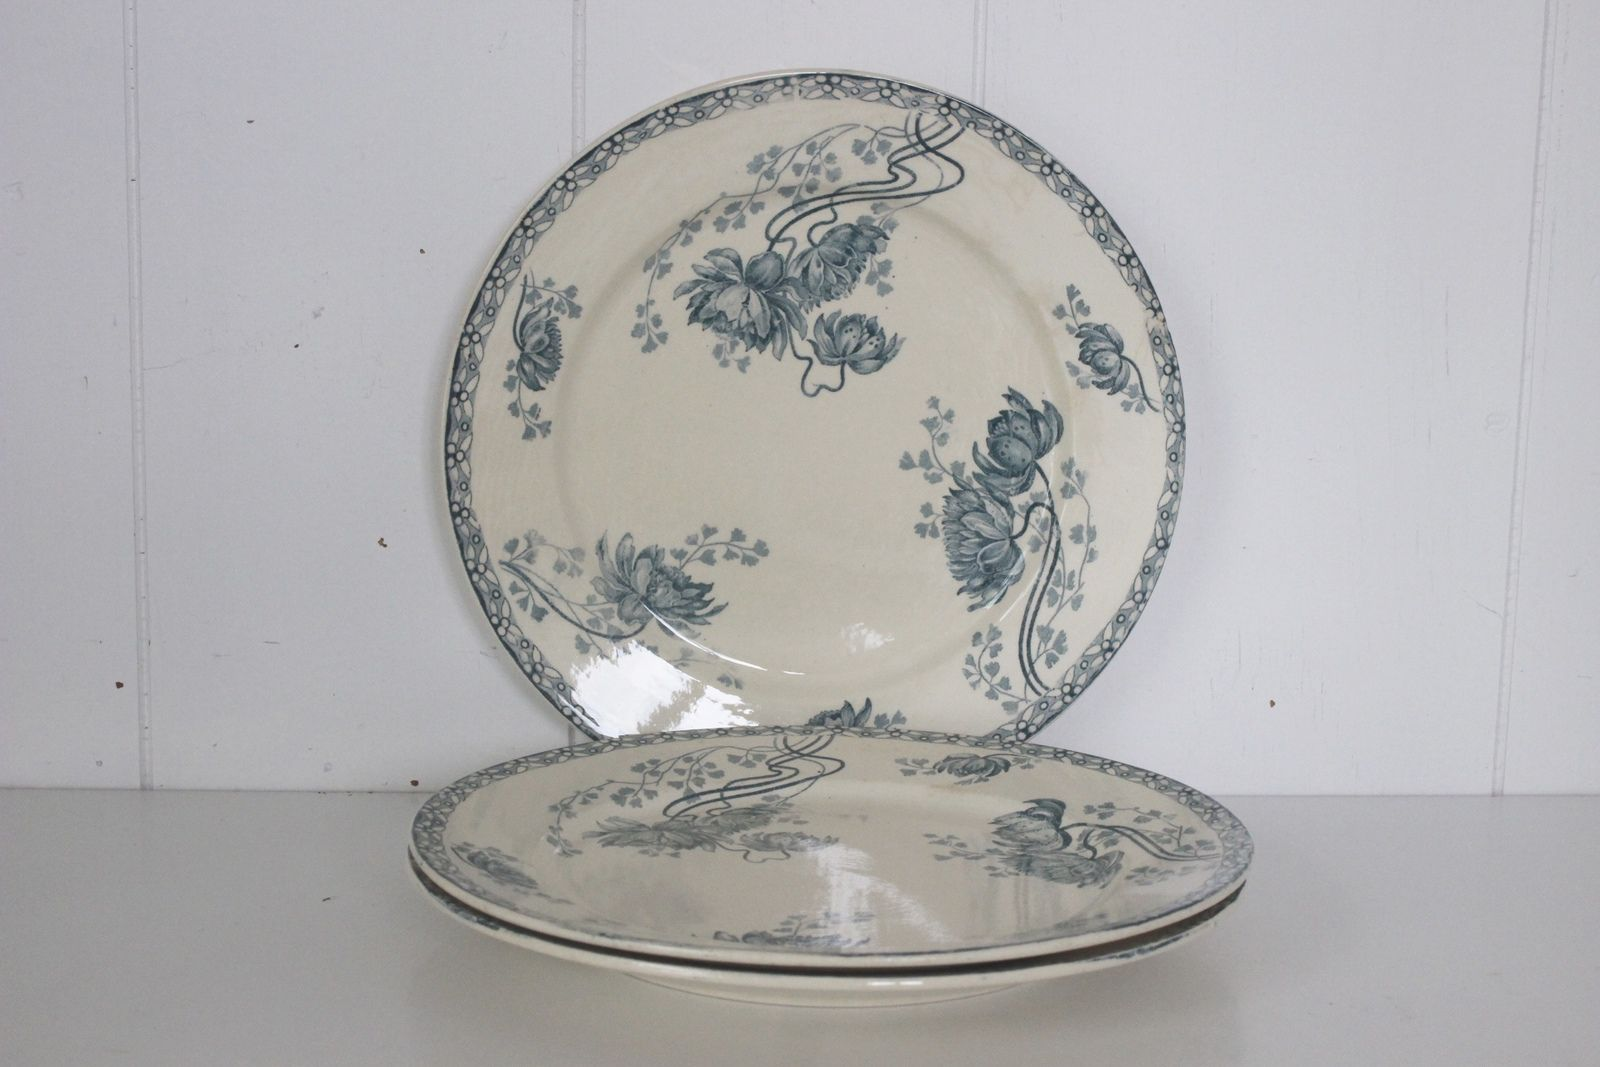 Lot de 3 assiettes plates Royat Sarreguemines